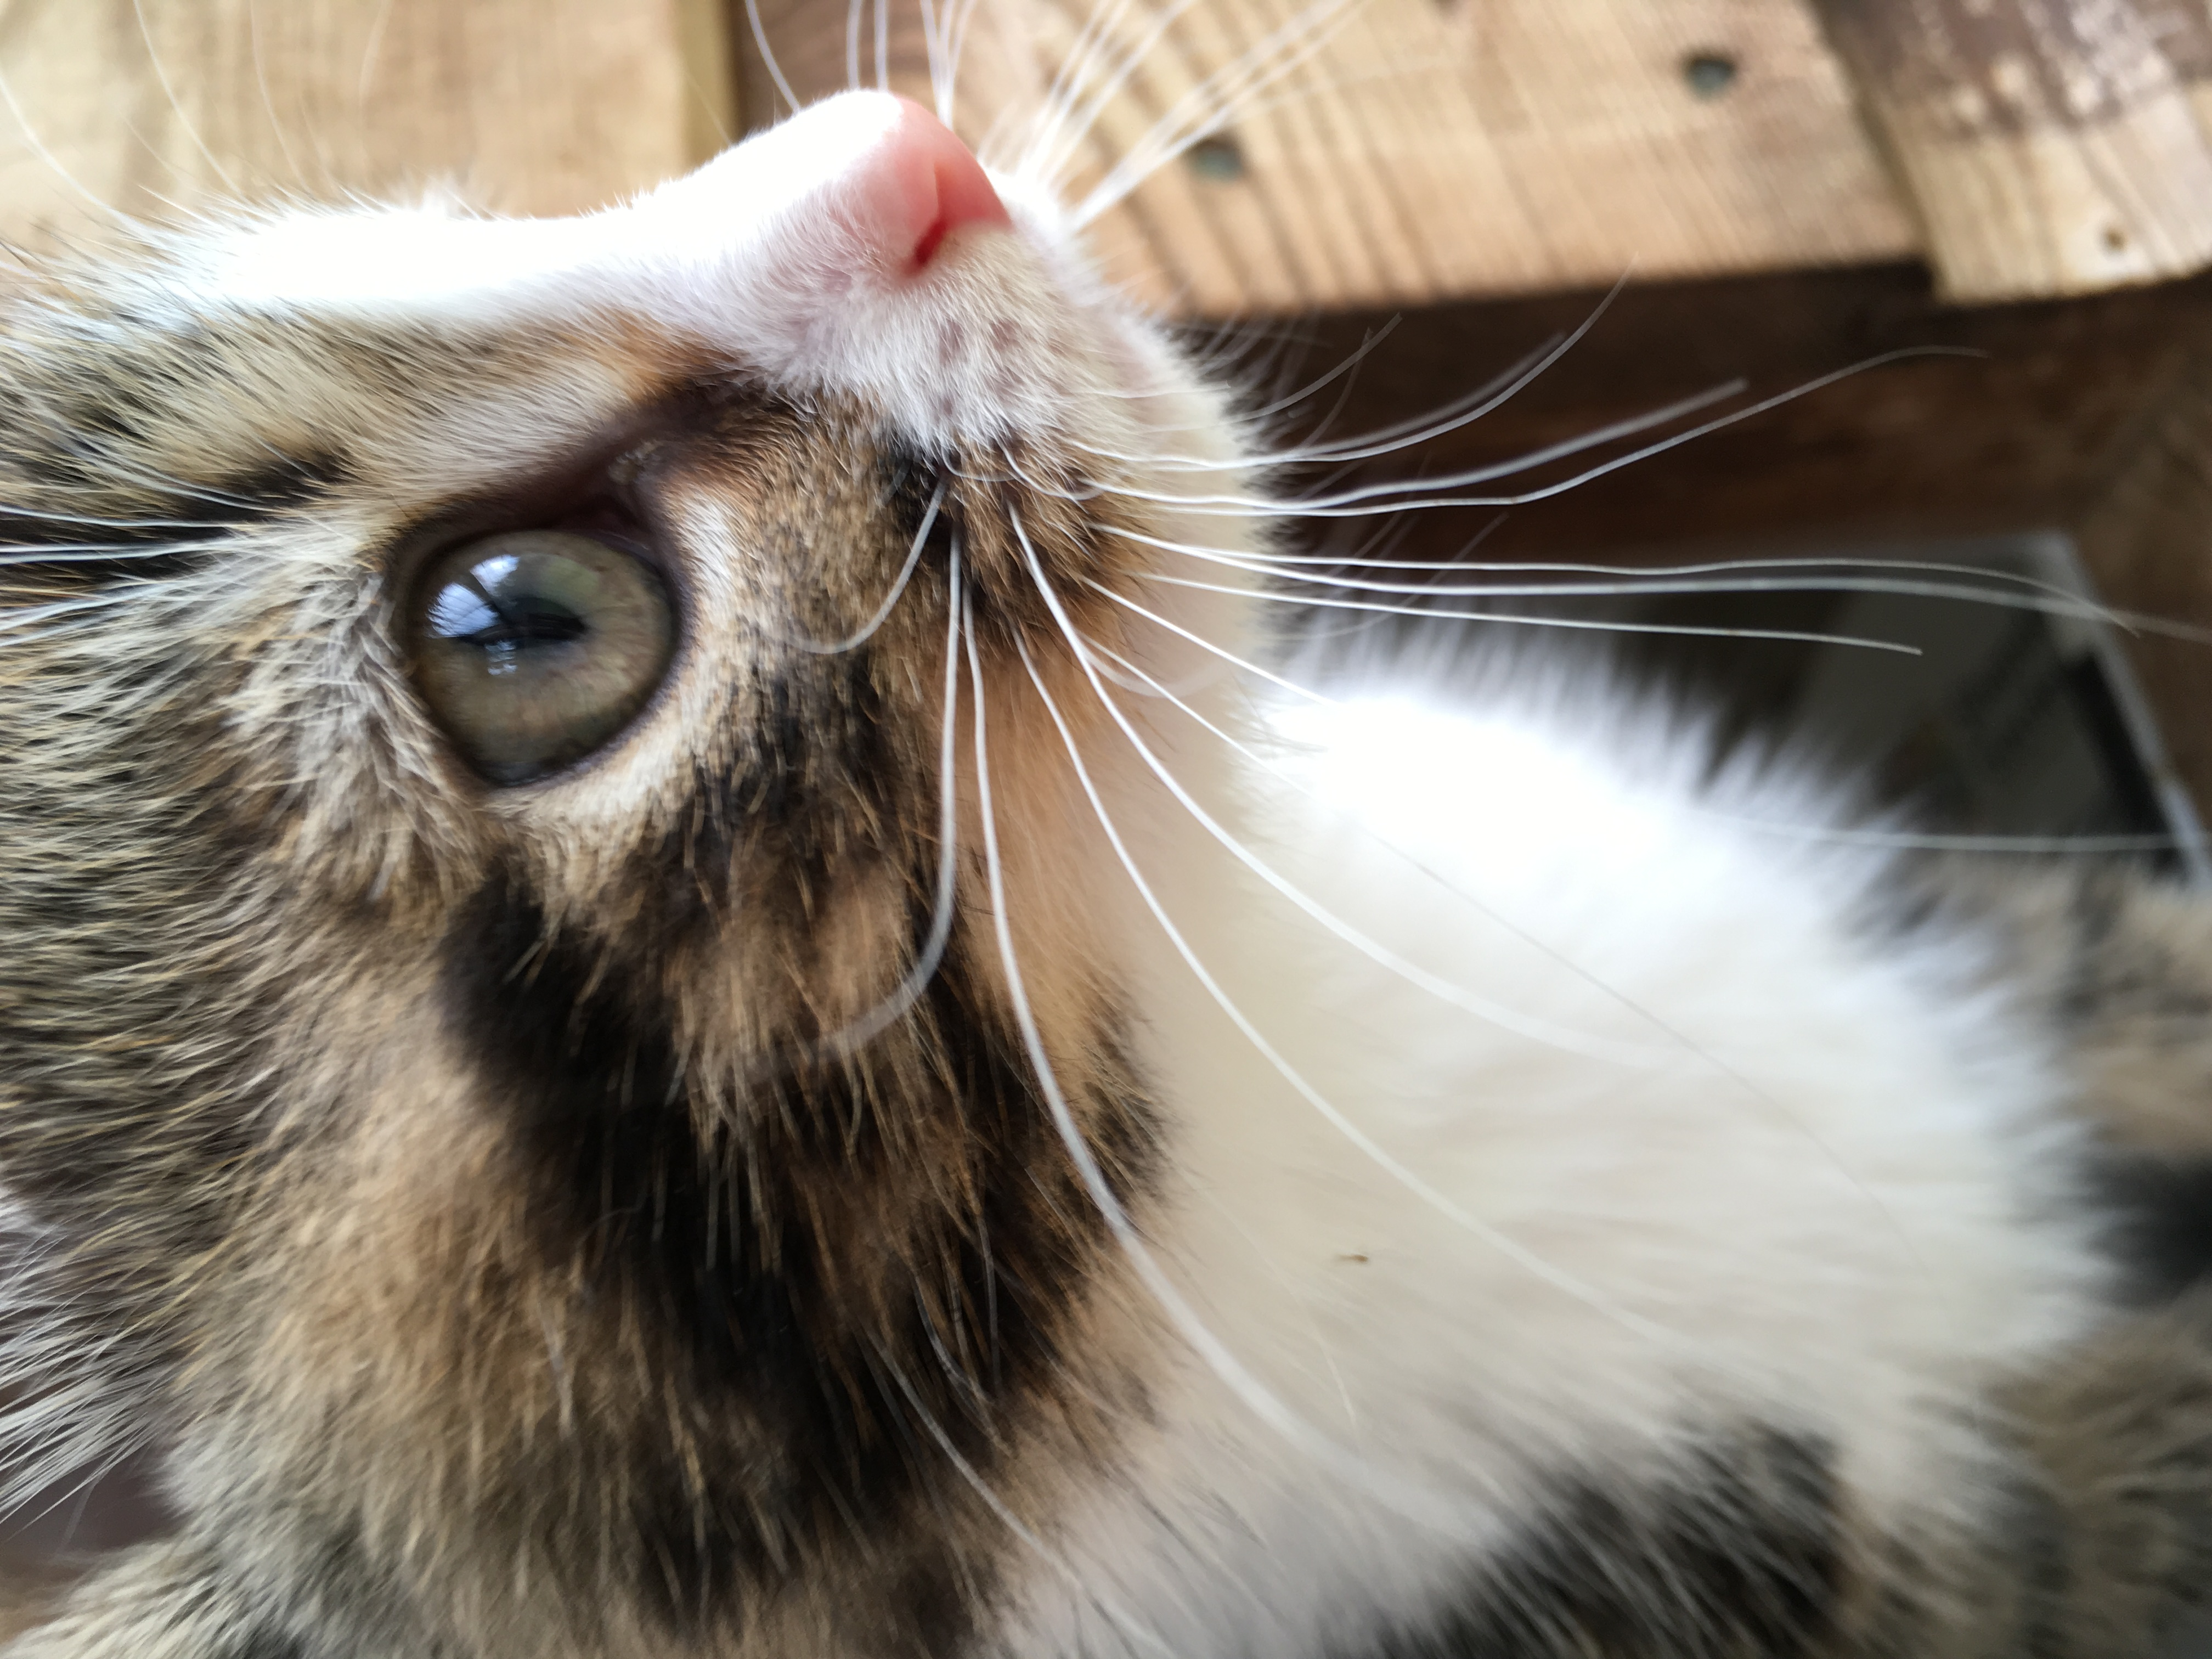 Kitten-close-up-photo-thanks-to-Elspeth-Stirling